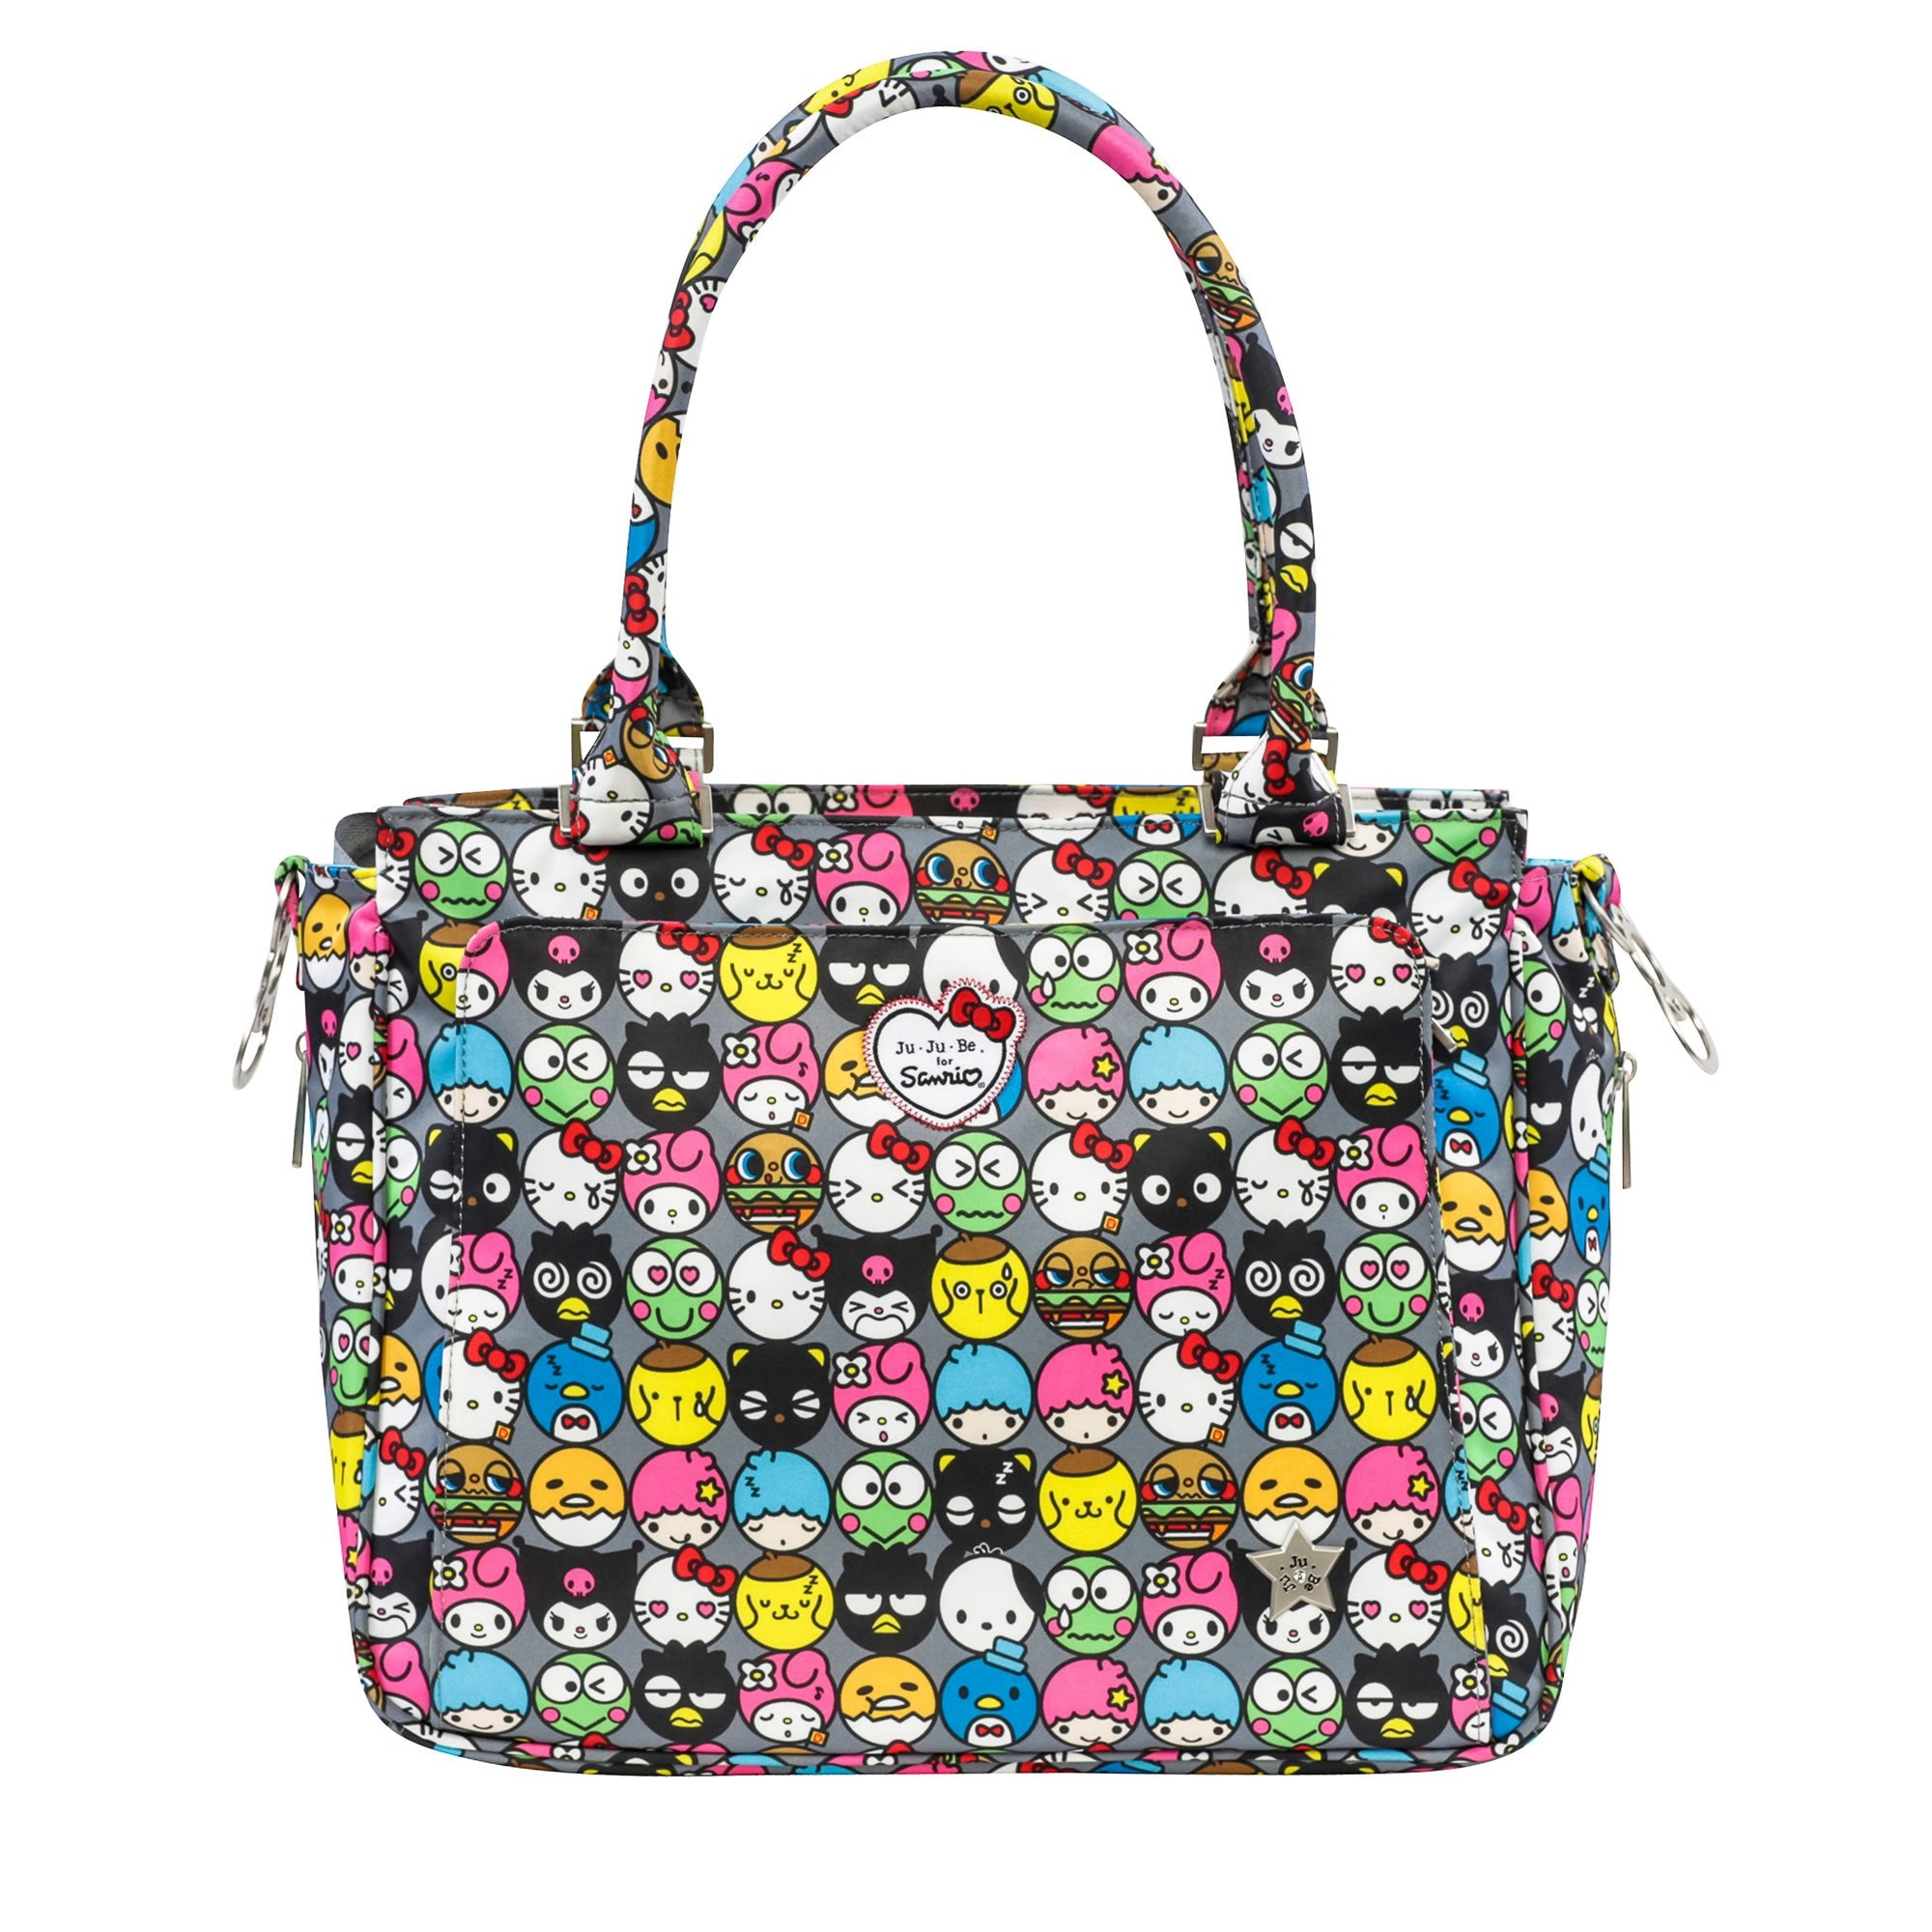 Ju-Ju-Be for Sanrio Be Classy changing bag Hello Friends – Laura s Little  Boutique Global 15dbb475d10c7